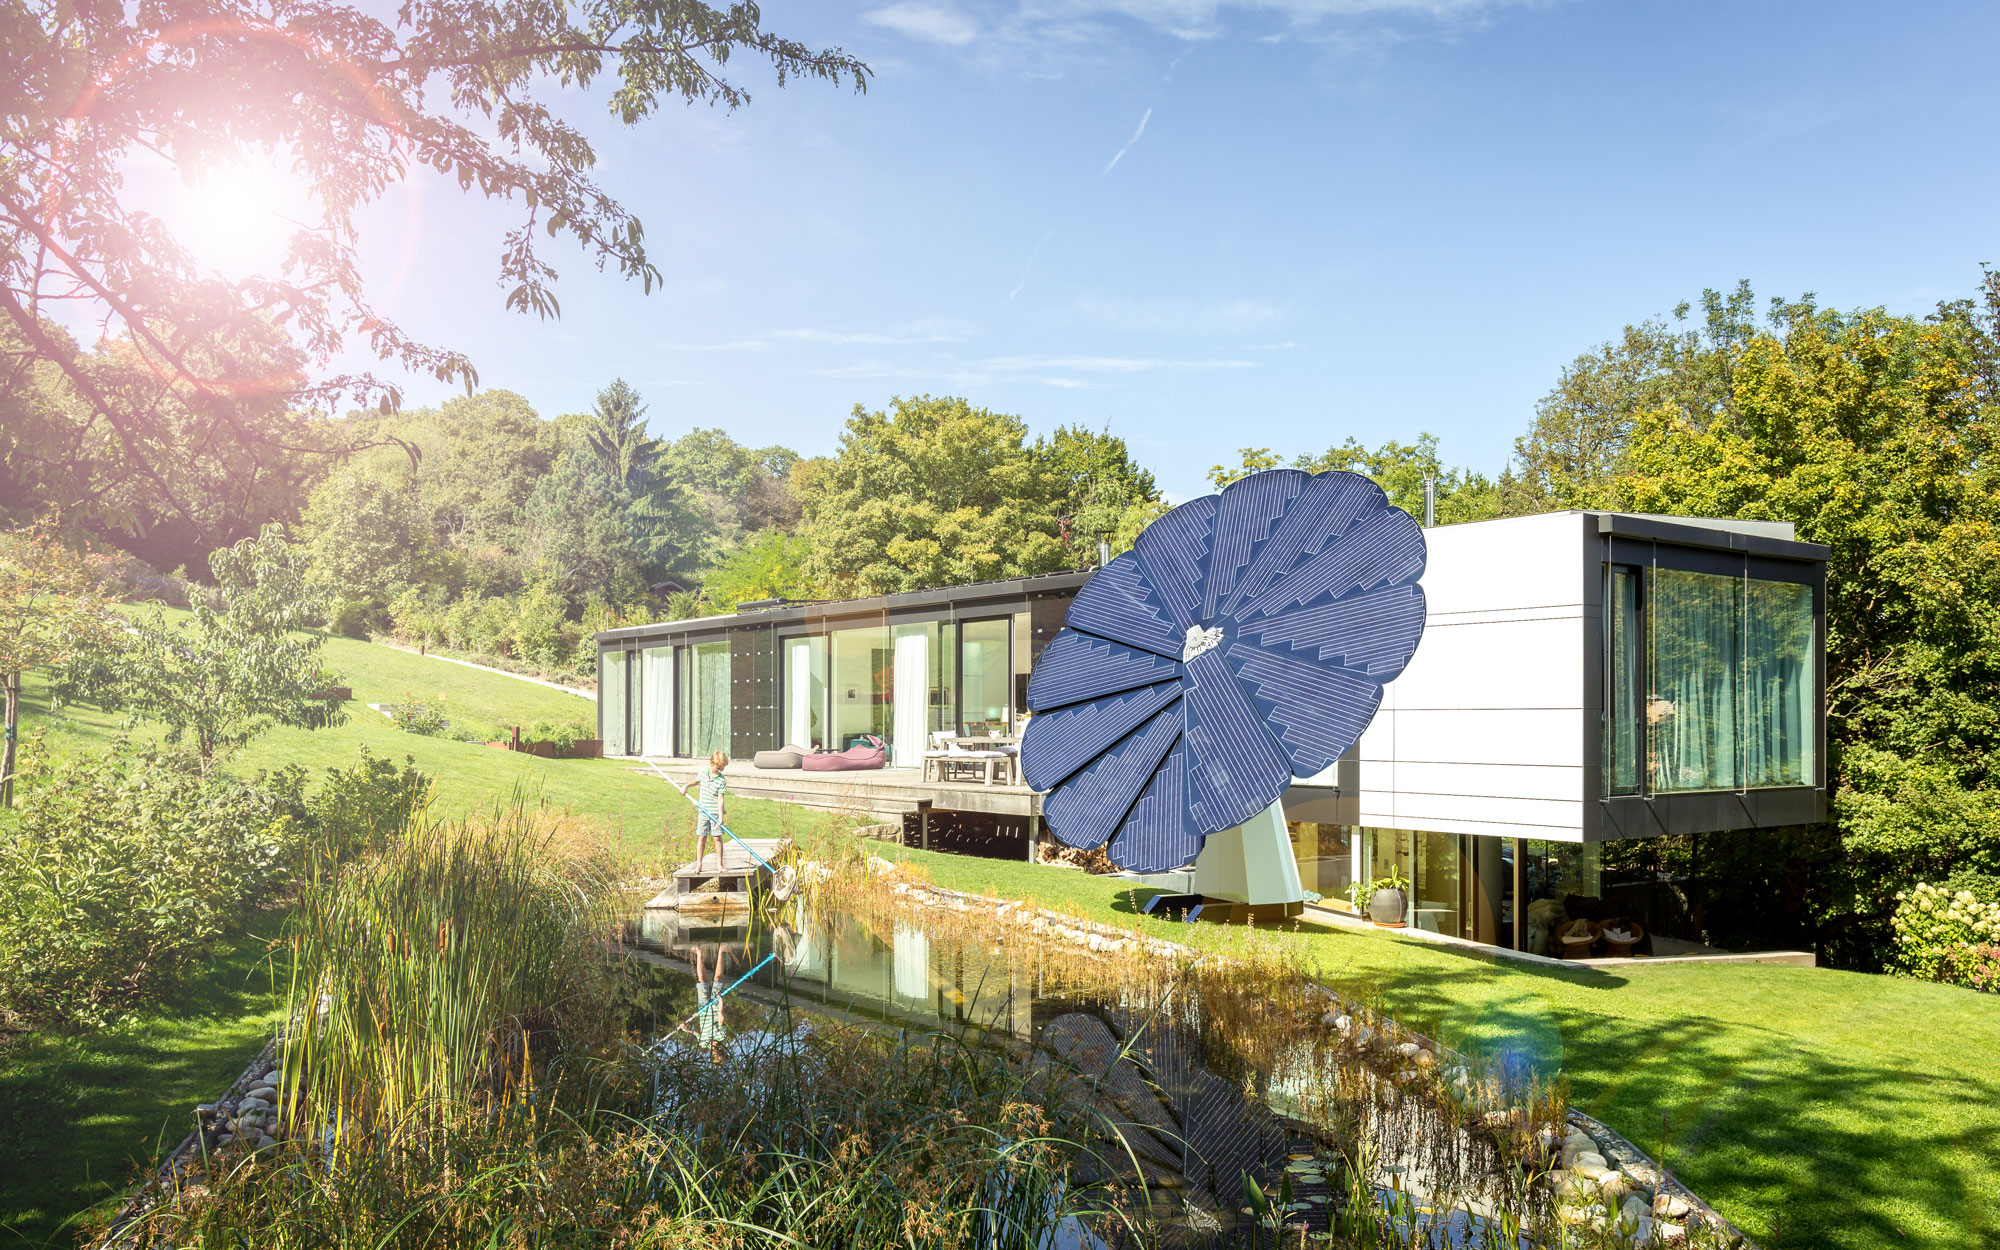 A SmartFlower Solar Panel Sits Outside a Modern Looking Home Surrounded by Trees